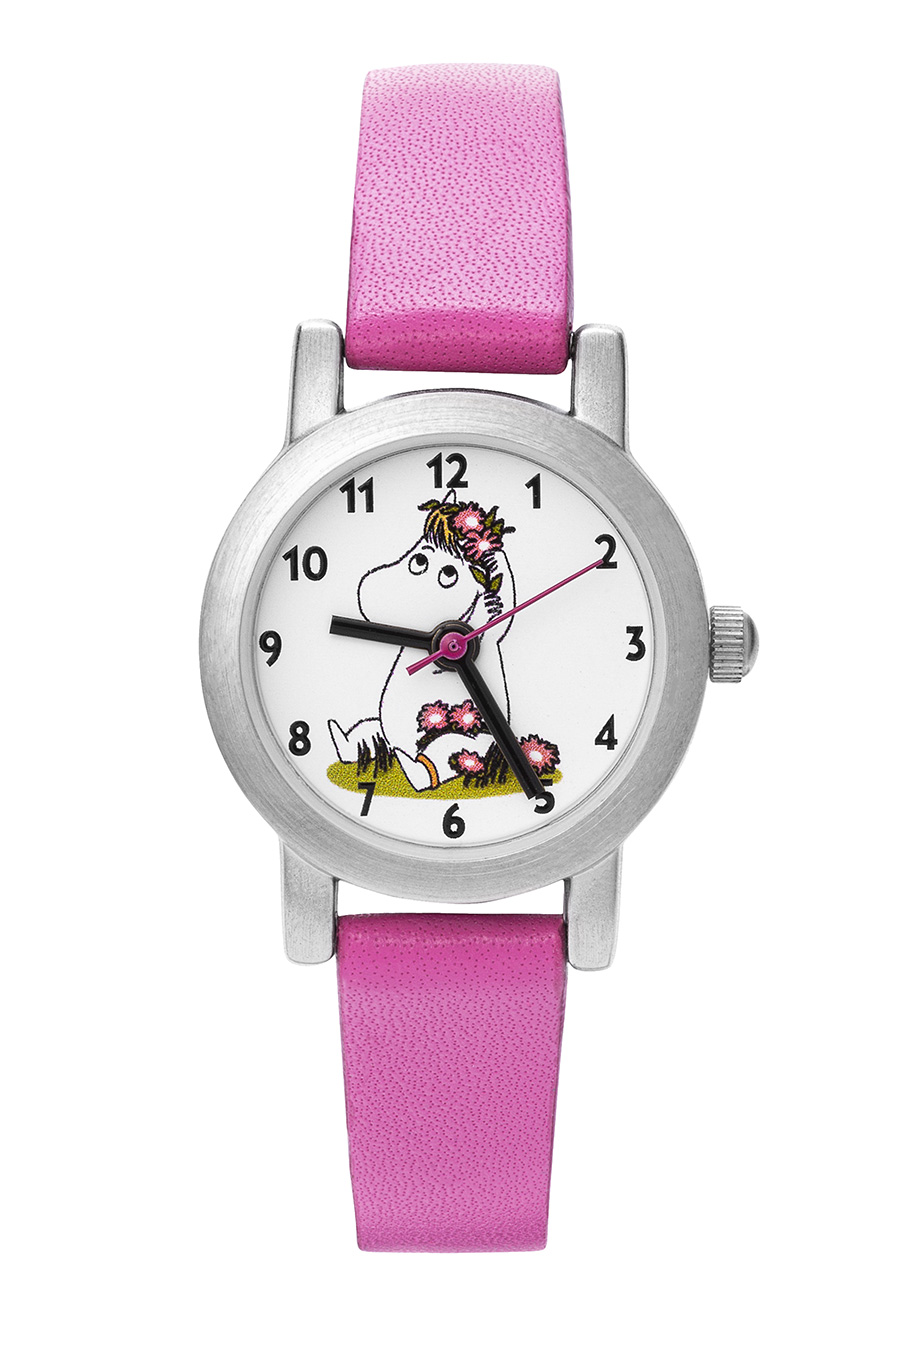 Saurum Snorkmaiden watch